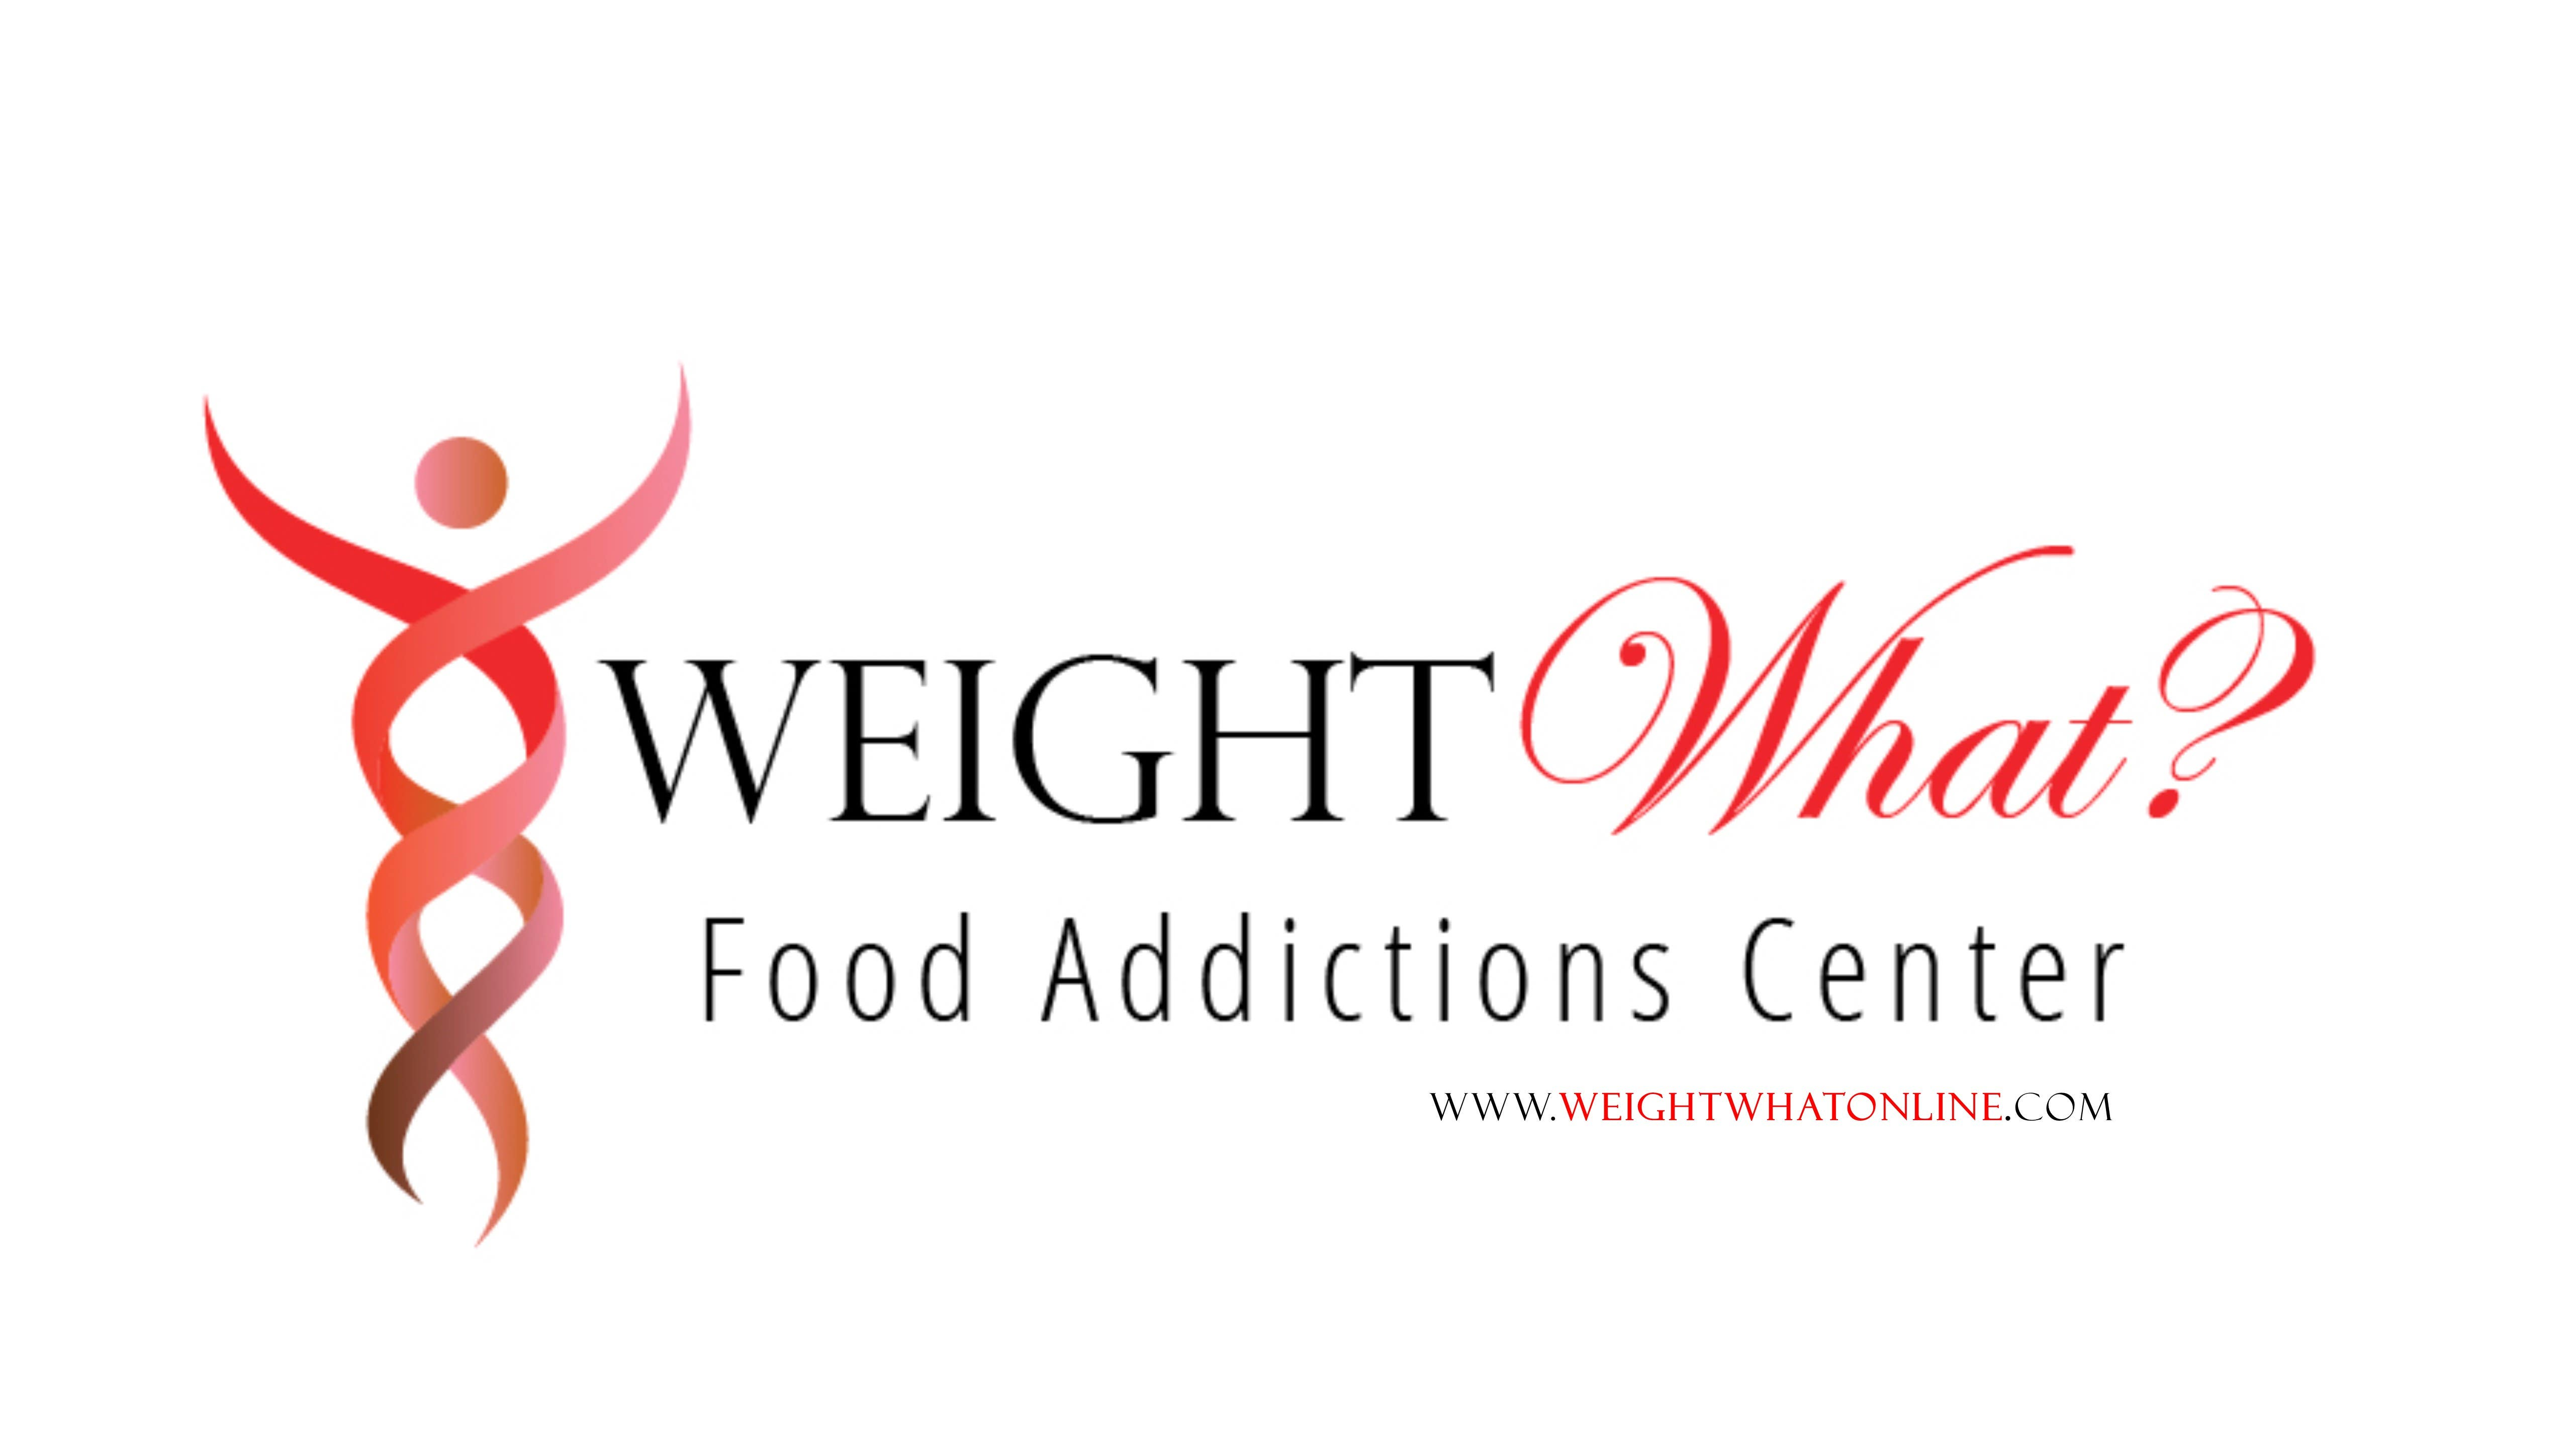 Weight, WHAT?